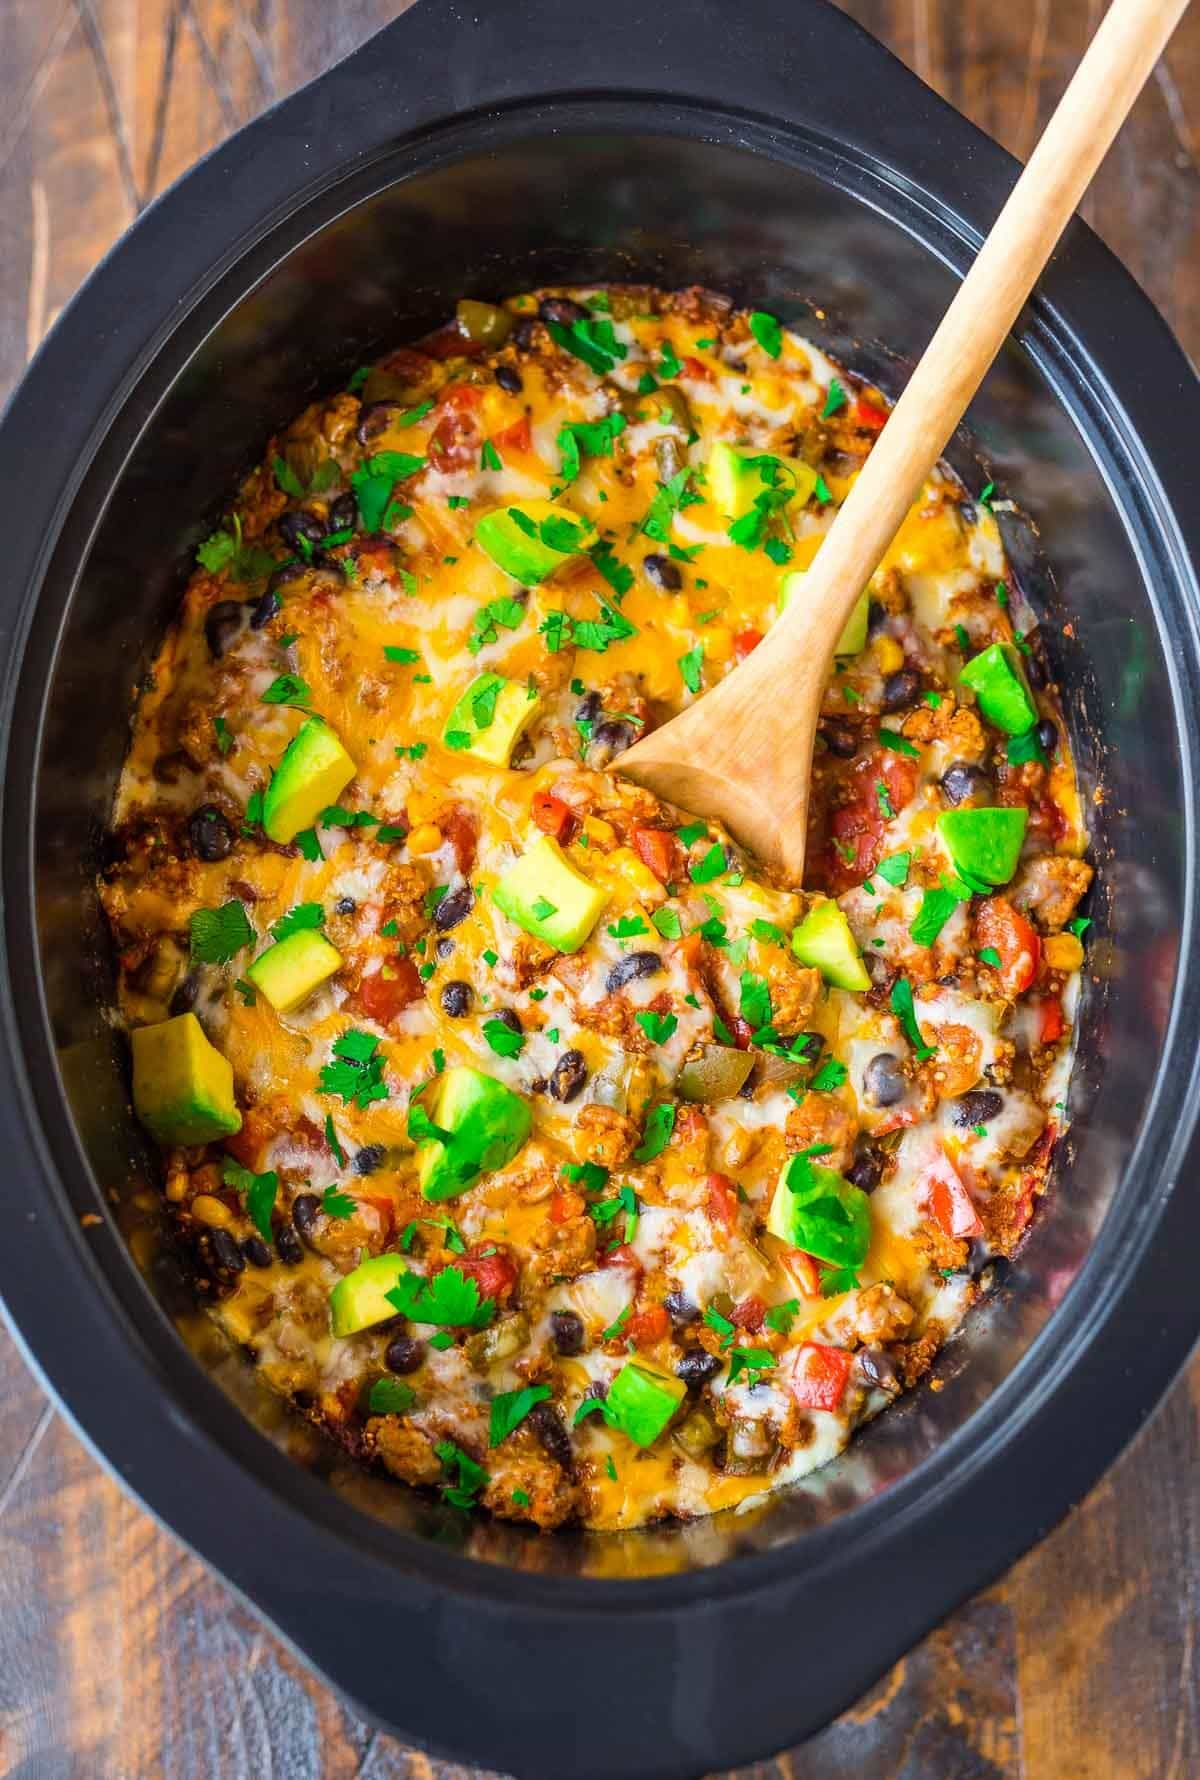 Crock Pot Mexican Casserole